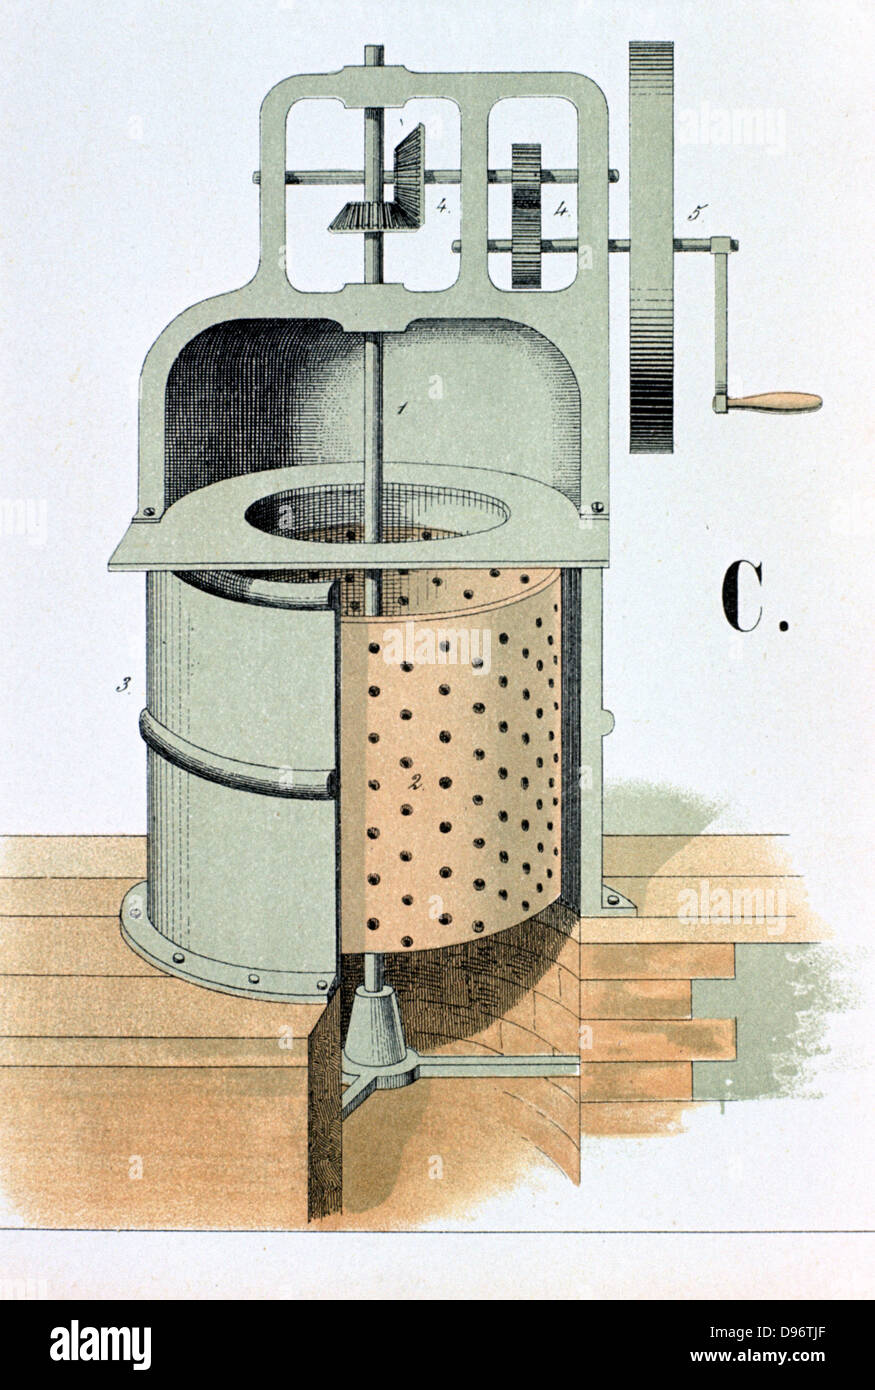 Centrifuge, 1882. Used to separate liquids from solids, or liquids from liquids of different density such as cream - Stock Image